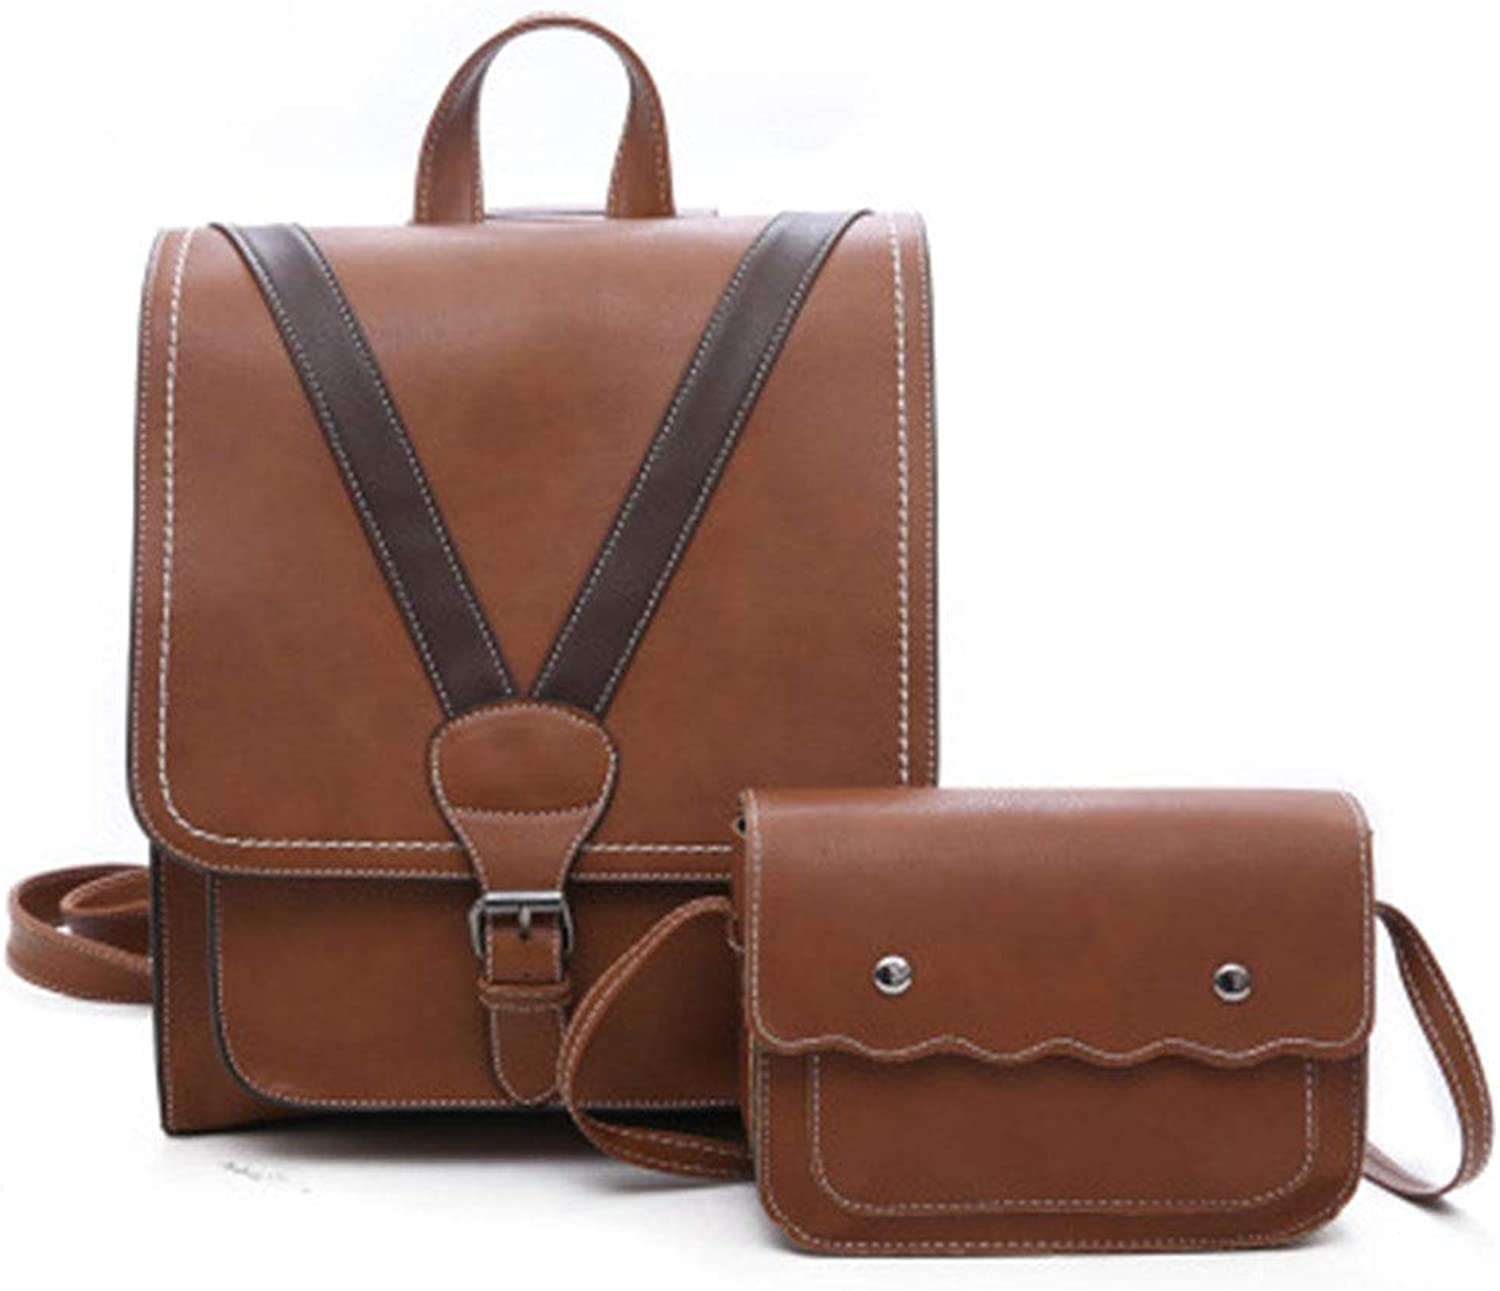 Pu Leather Retro Fashion Backpack, Simple Versatile Backpack, Suitable for Women Shopping, Go to Work